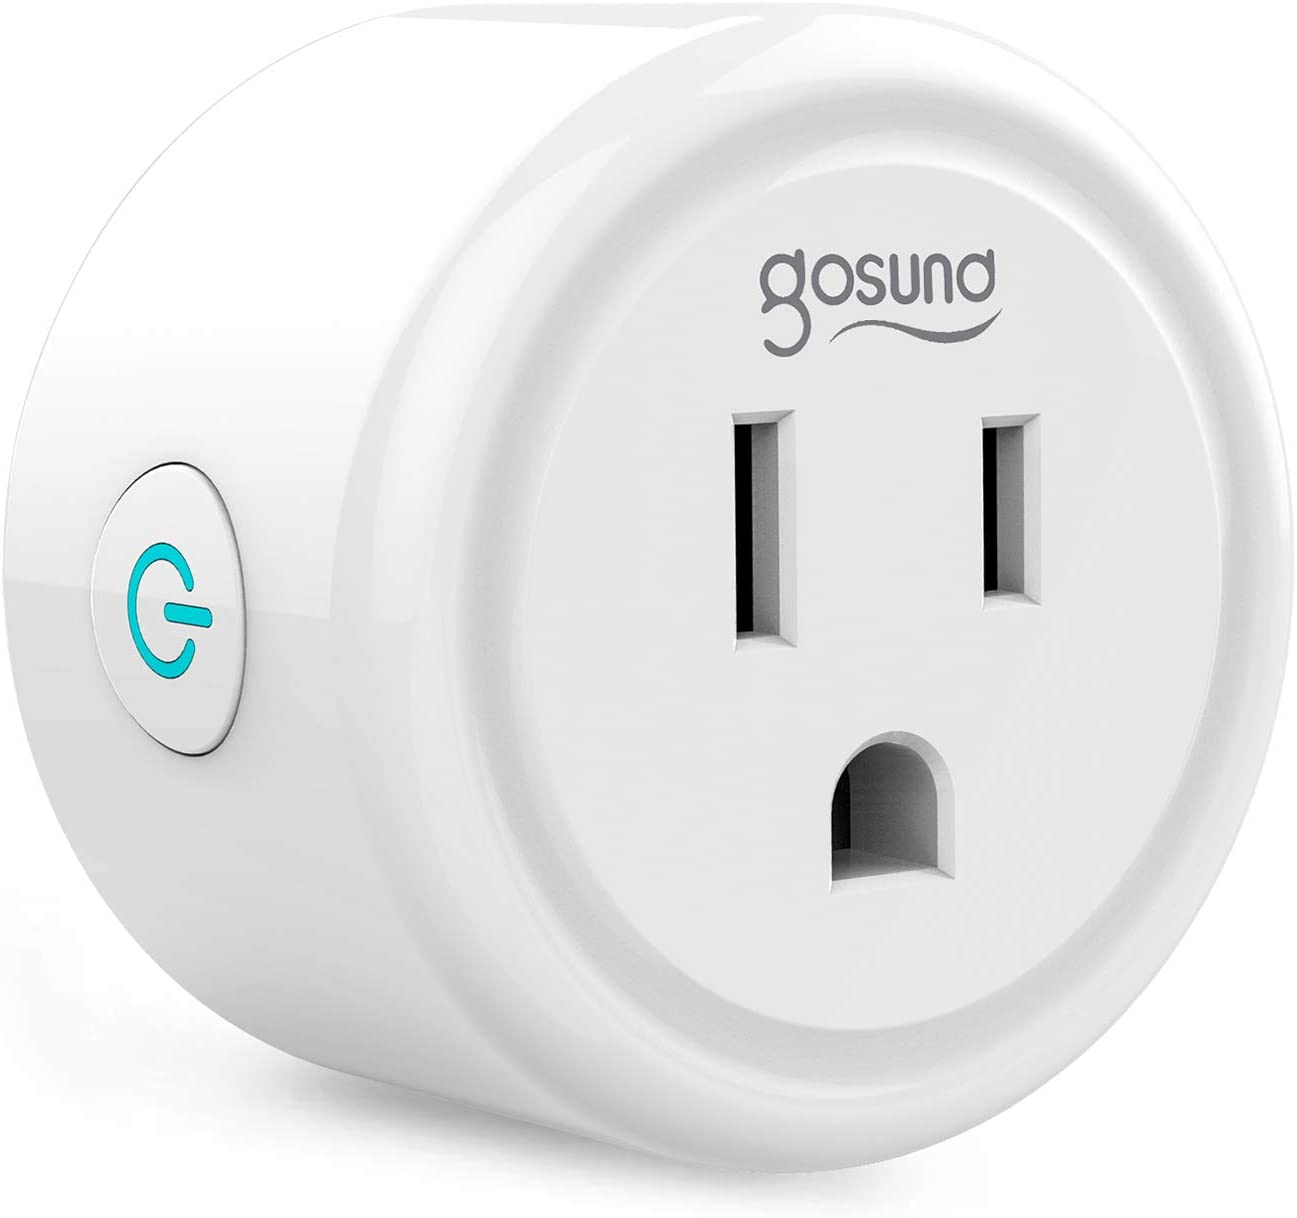 Mini Smart Plug Gosund WiFi Outlet Works with Alexa Google Assistant, No Hub Required, ETL and FCC Listed Only 2.4GHz WiFi Enabled Remote Control WiFi Smart Socket - -